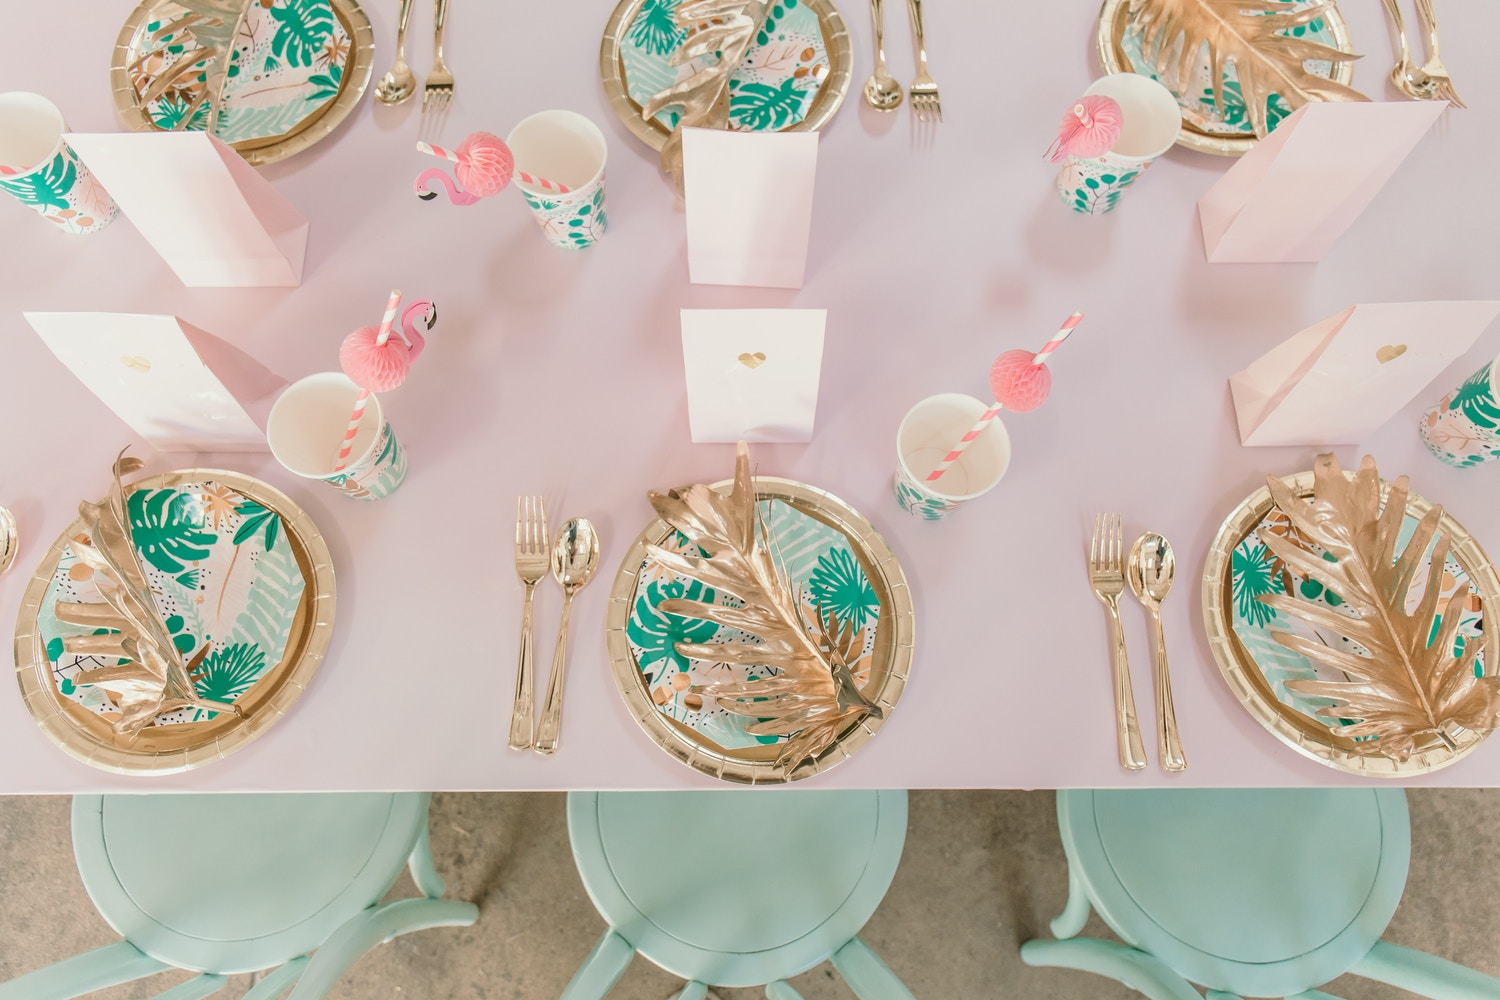 RUBY RABBIT PARTYWARE: YOUR BOUTIQUE ONLINE PARTY STORE